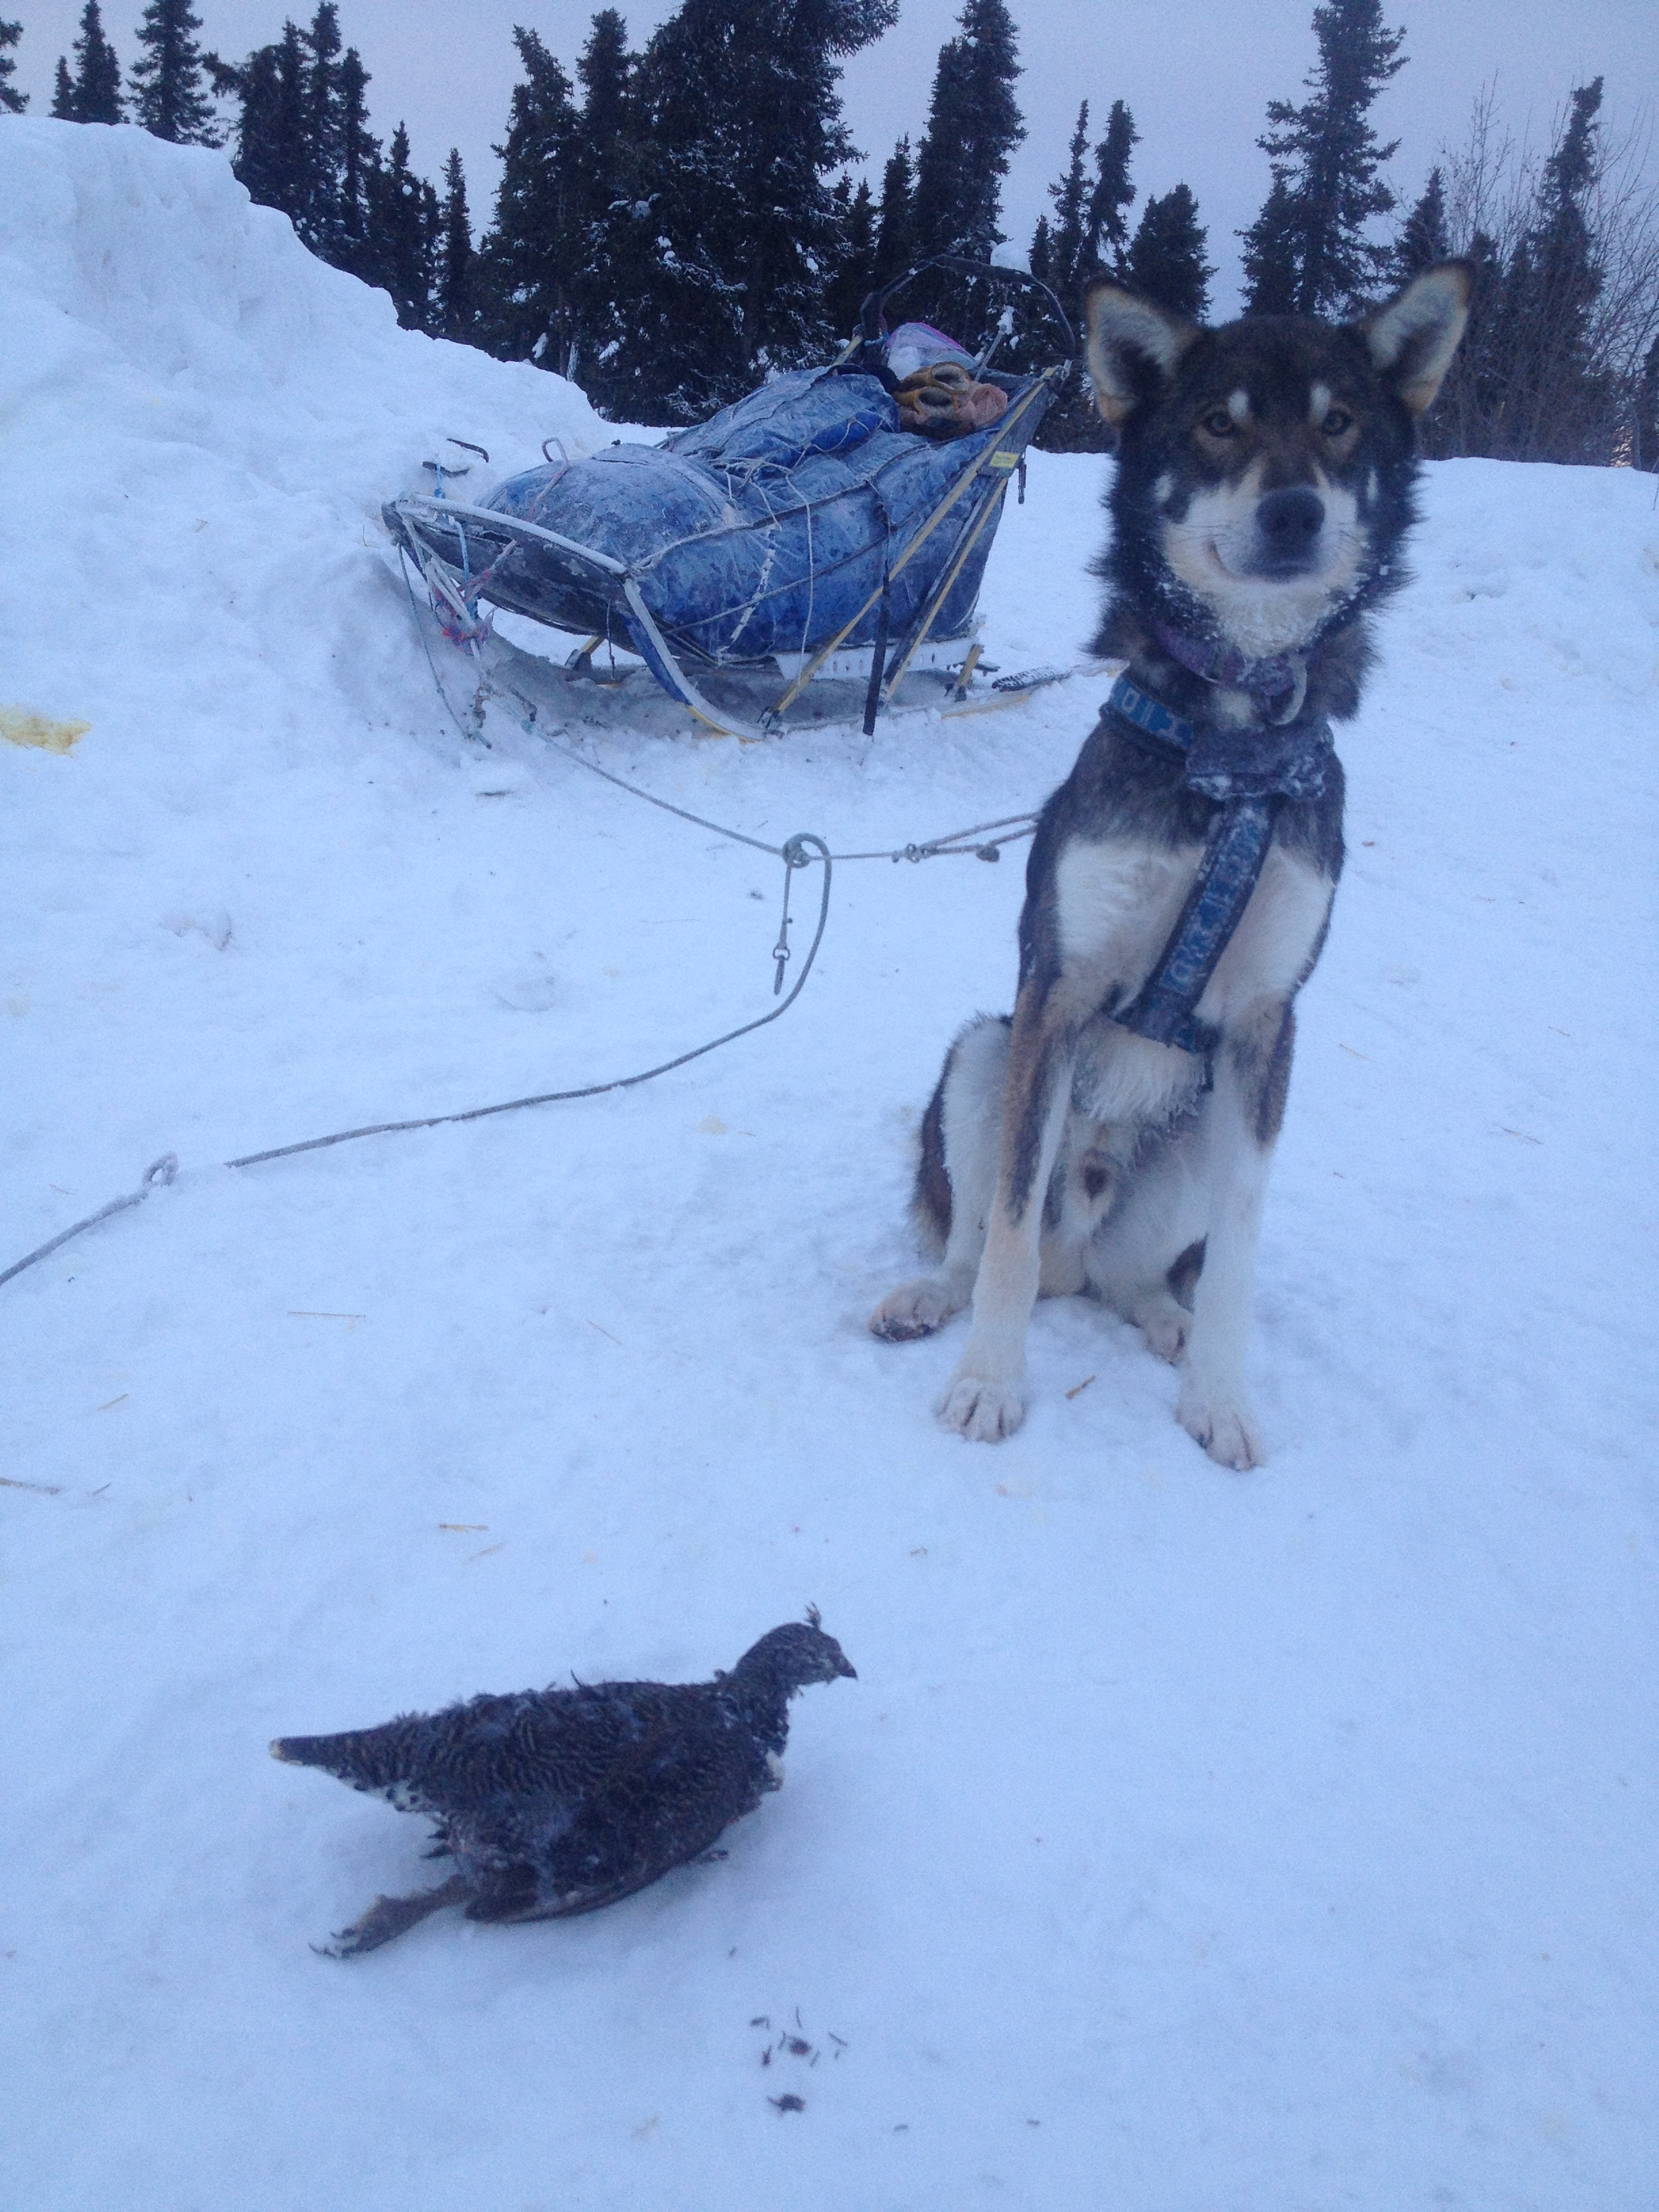 Drake proudly shows off his grouse.